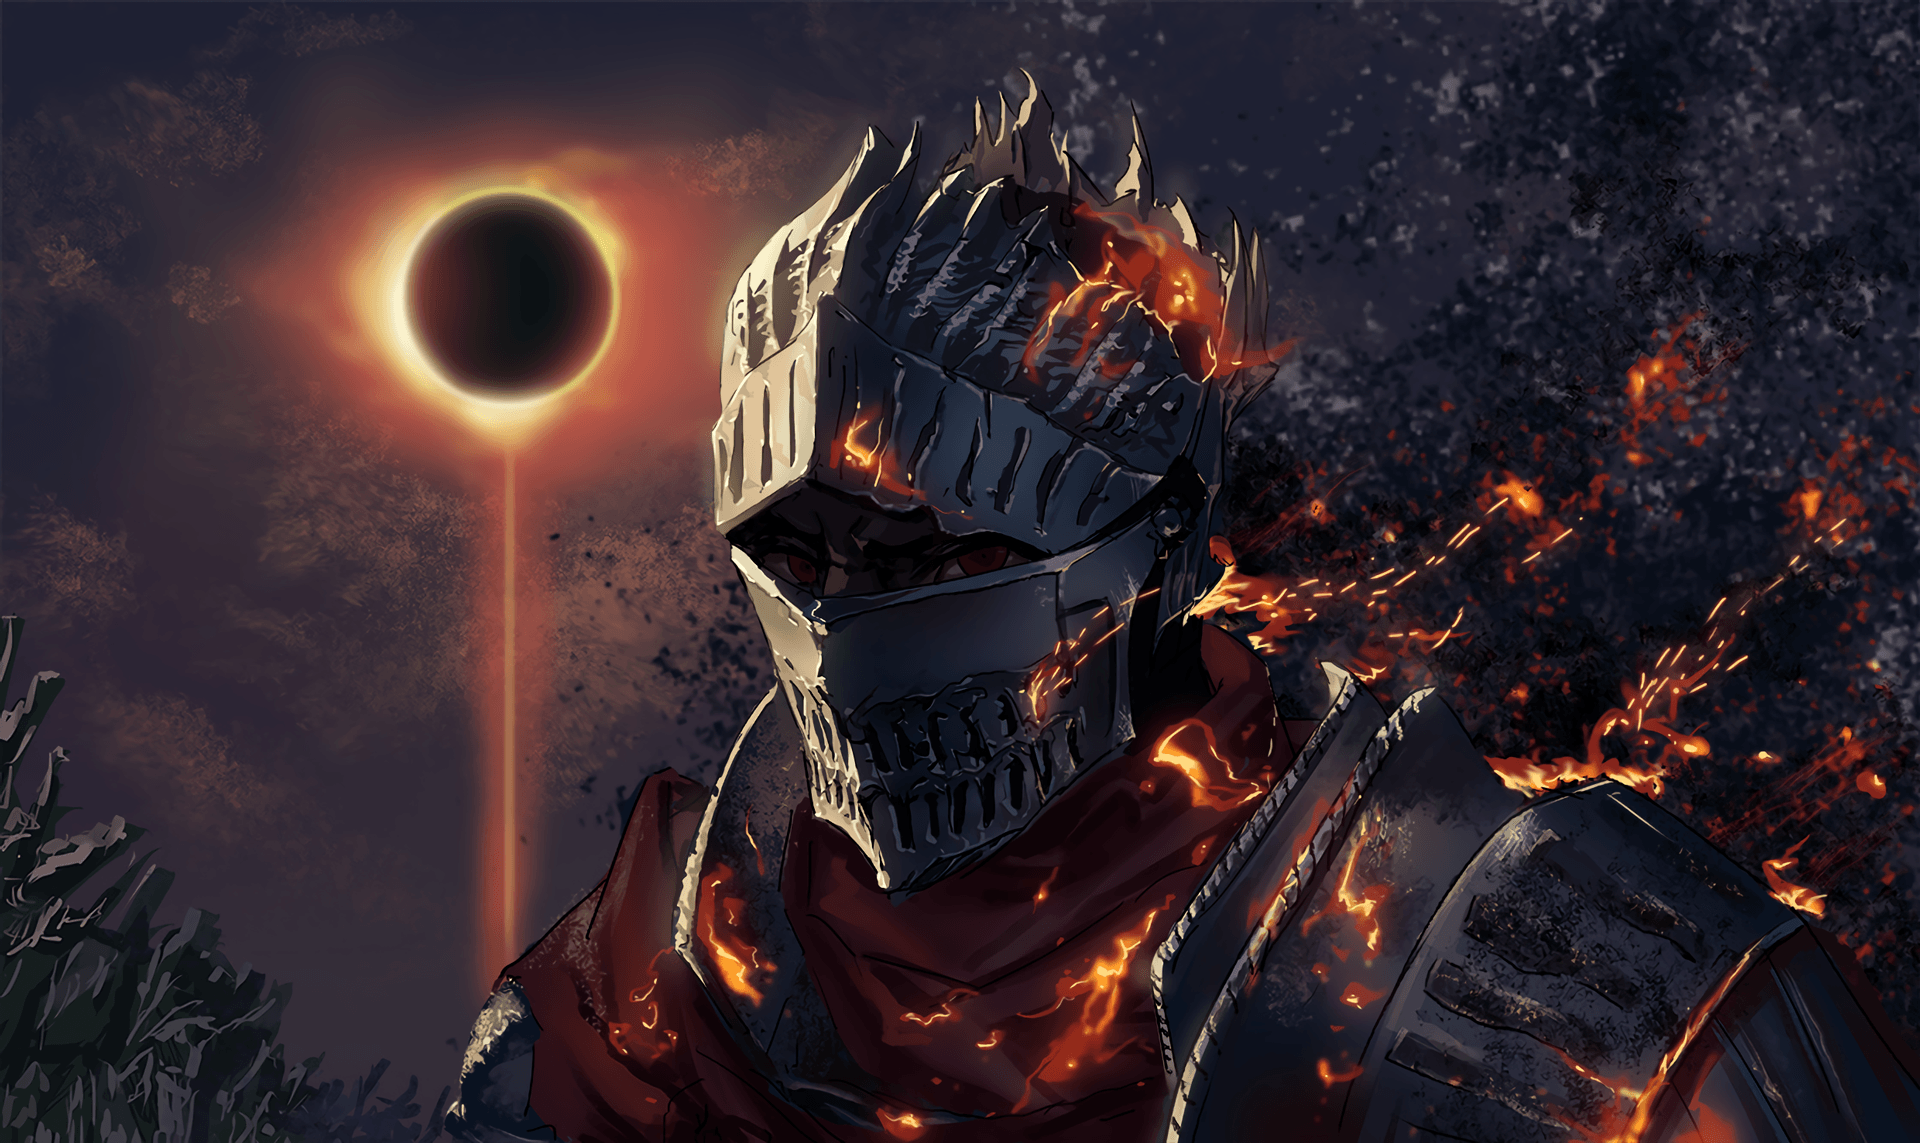 dark souls 3 boss wallpaper, dark souls 3 wallpaper engine